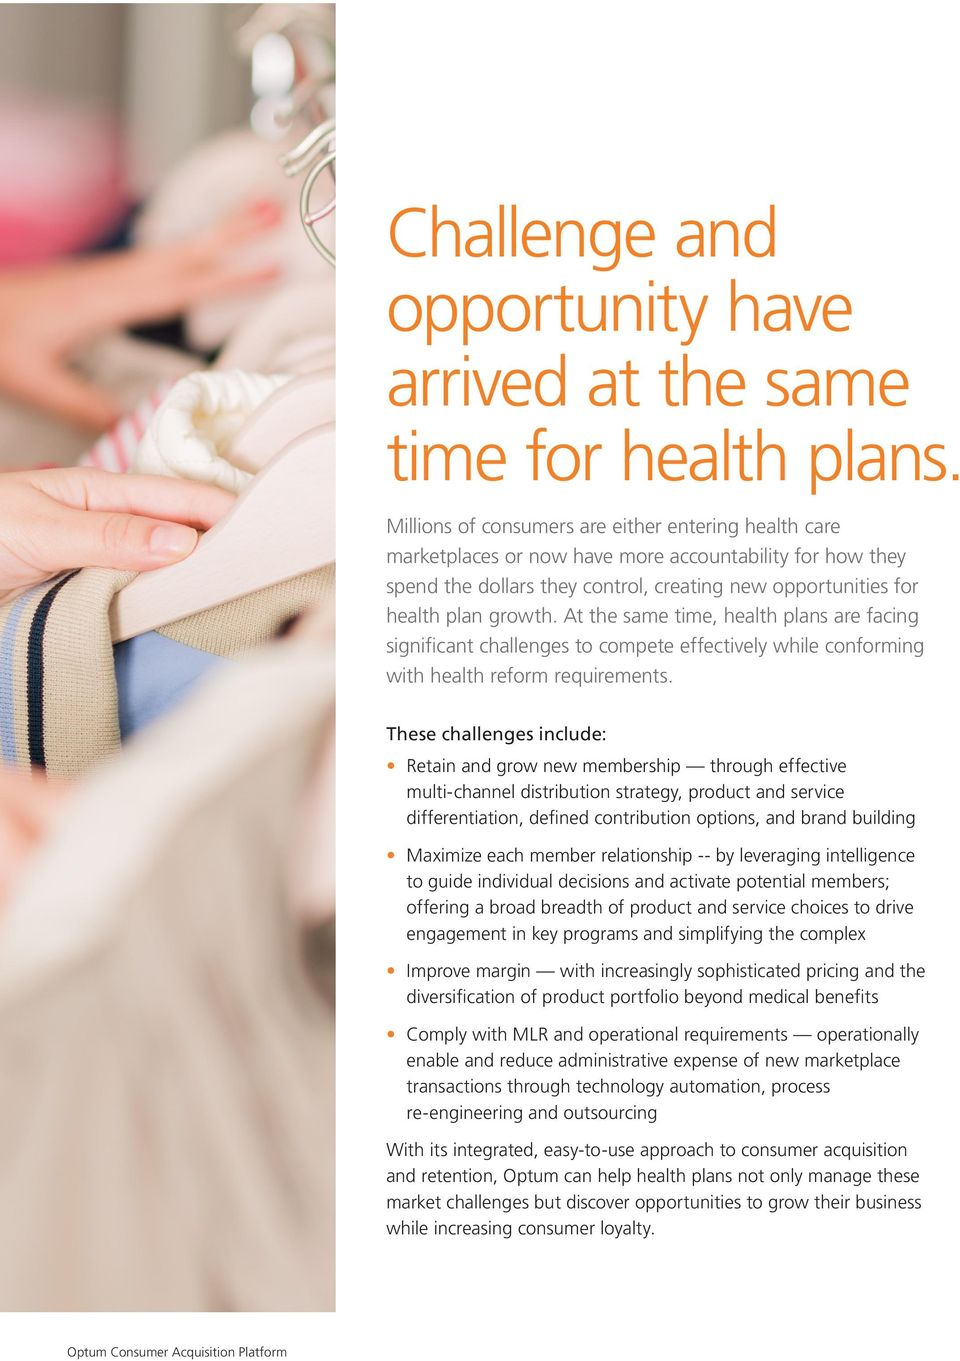 At the same time, health plans are facing significant challenges to compete effectively while conforming with health reform requirements.